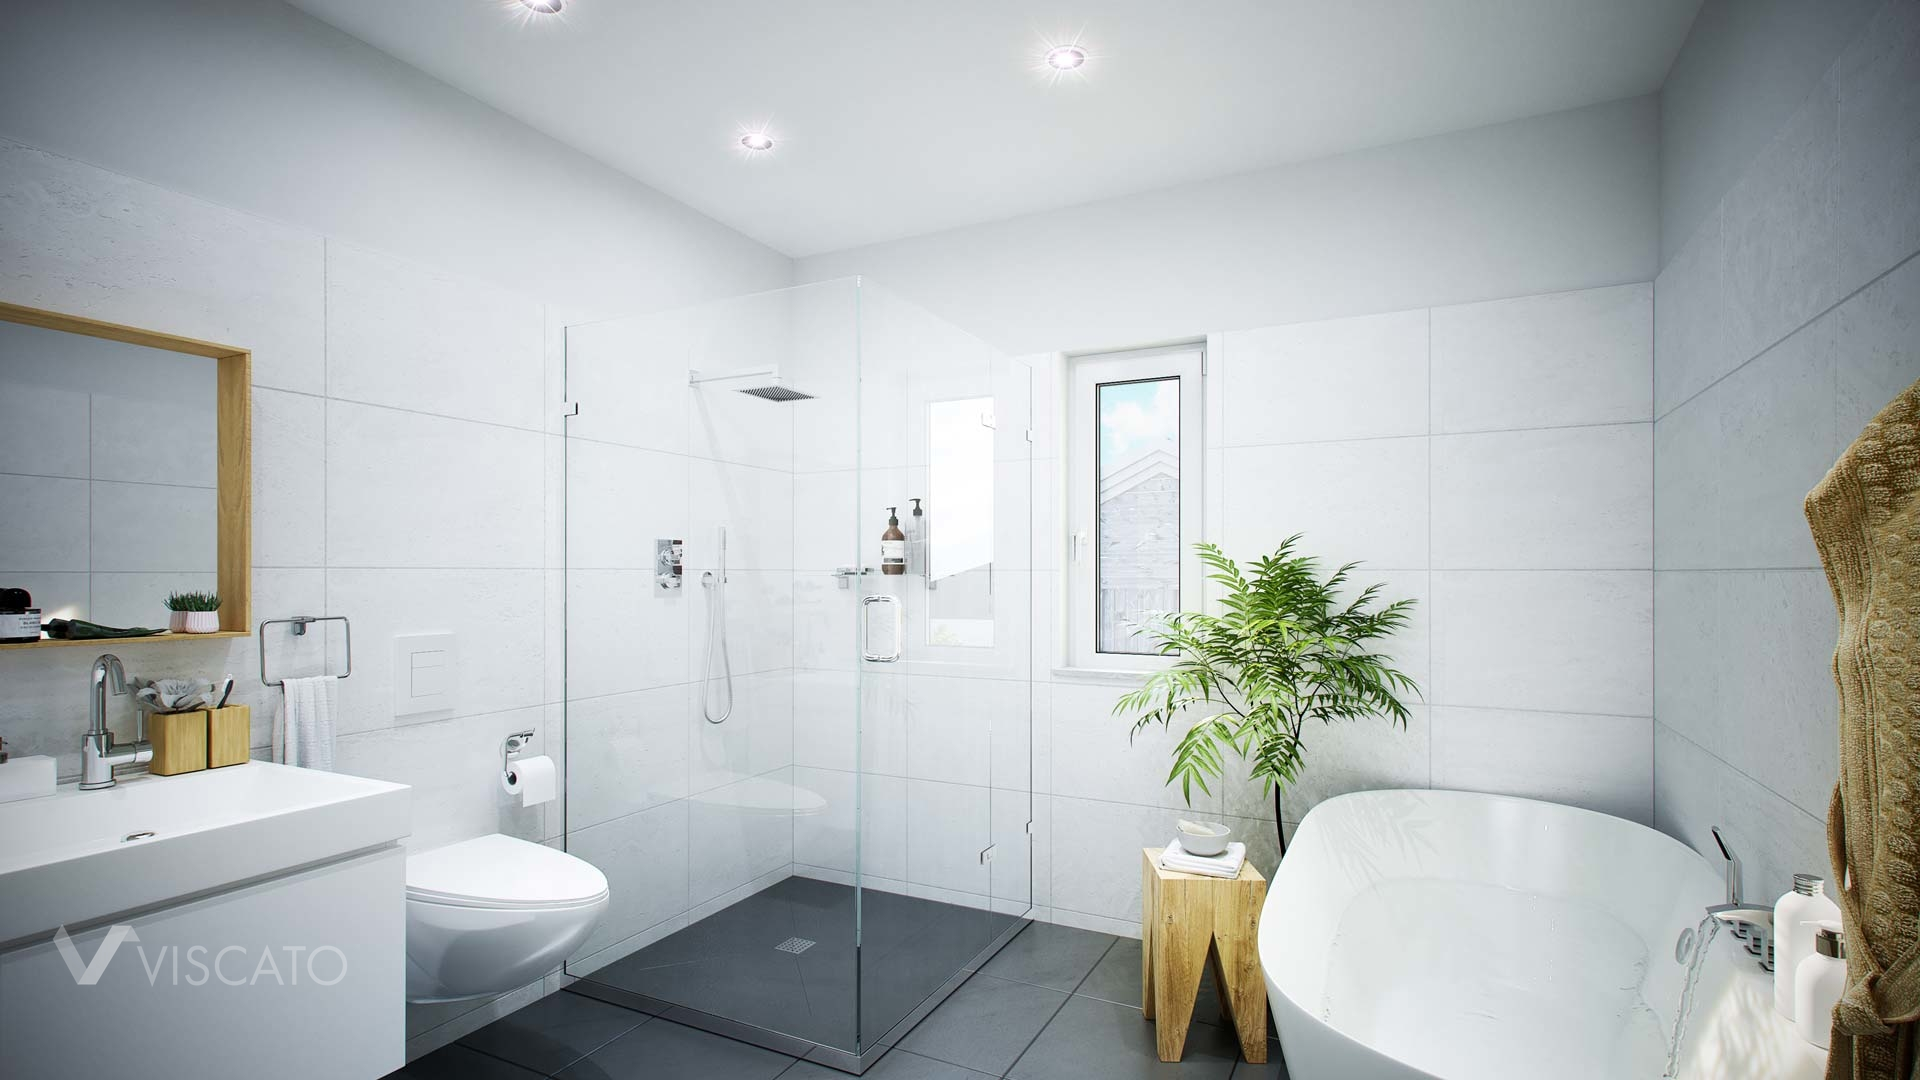 Artistic renderings of the consistent bathroom with a glass shower Viscato